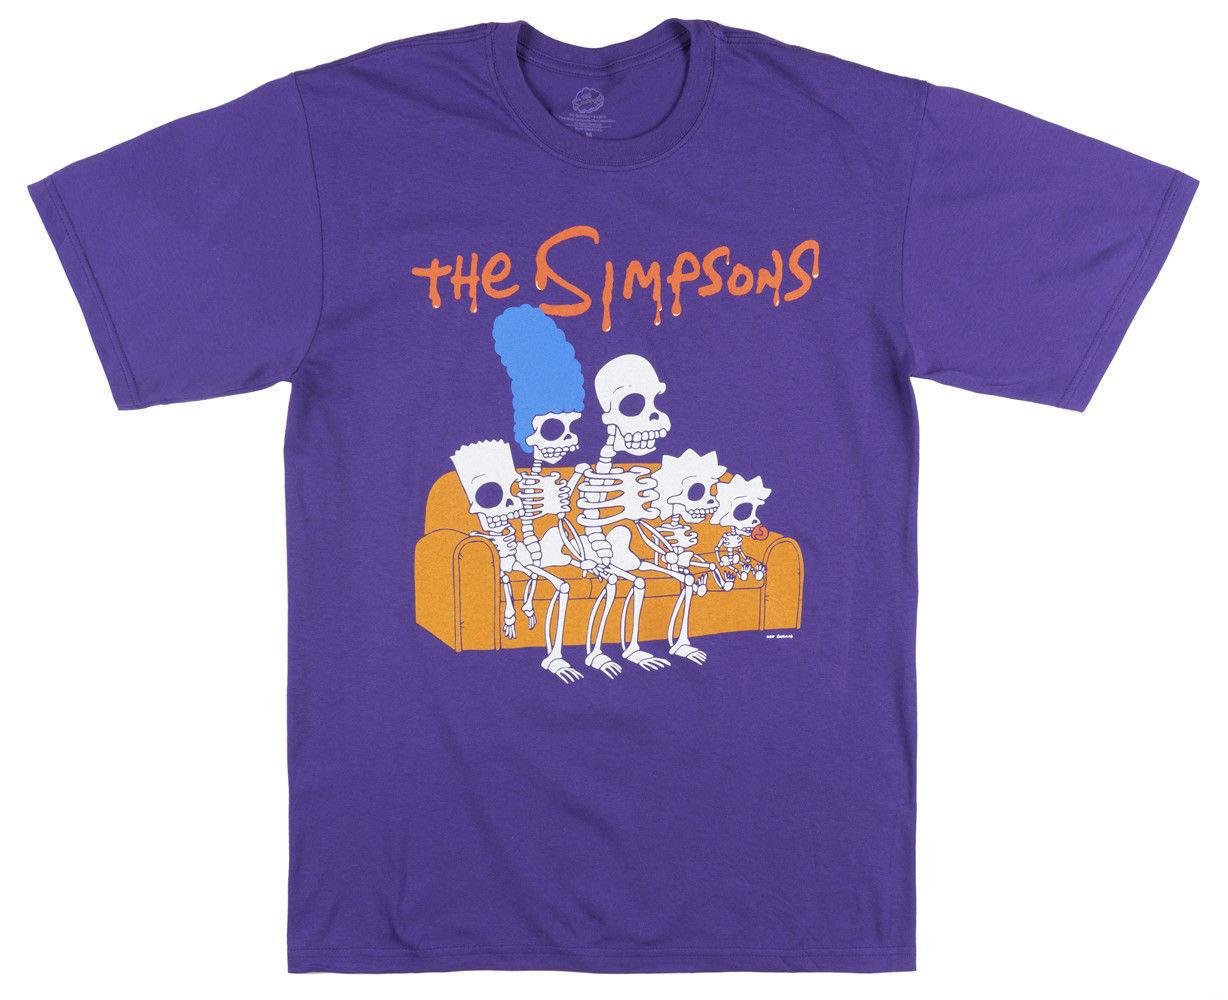 Simpsons Halloween Shirt.The Simpsons Family Skeletons T Shirt Purple Mens Halloween Retro Tv 234xl I197 Funny Free Shipping Unisex Casual Gift